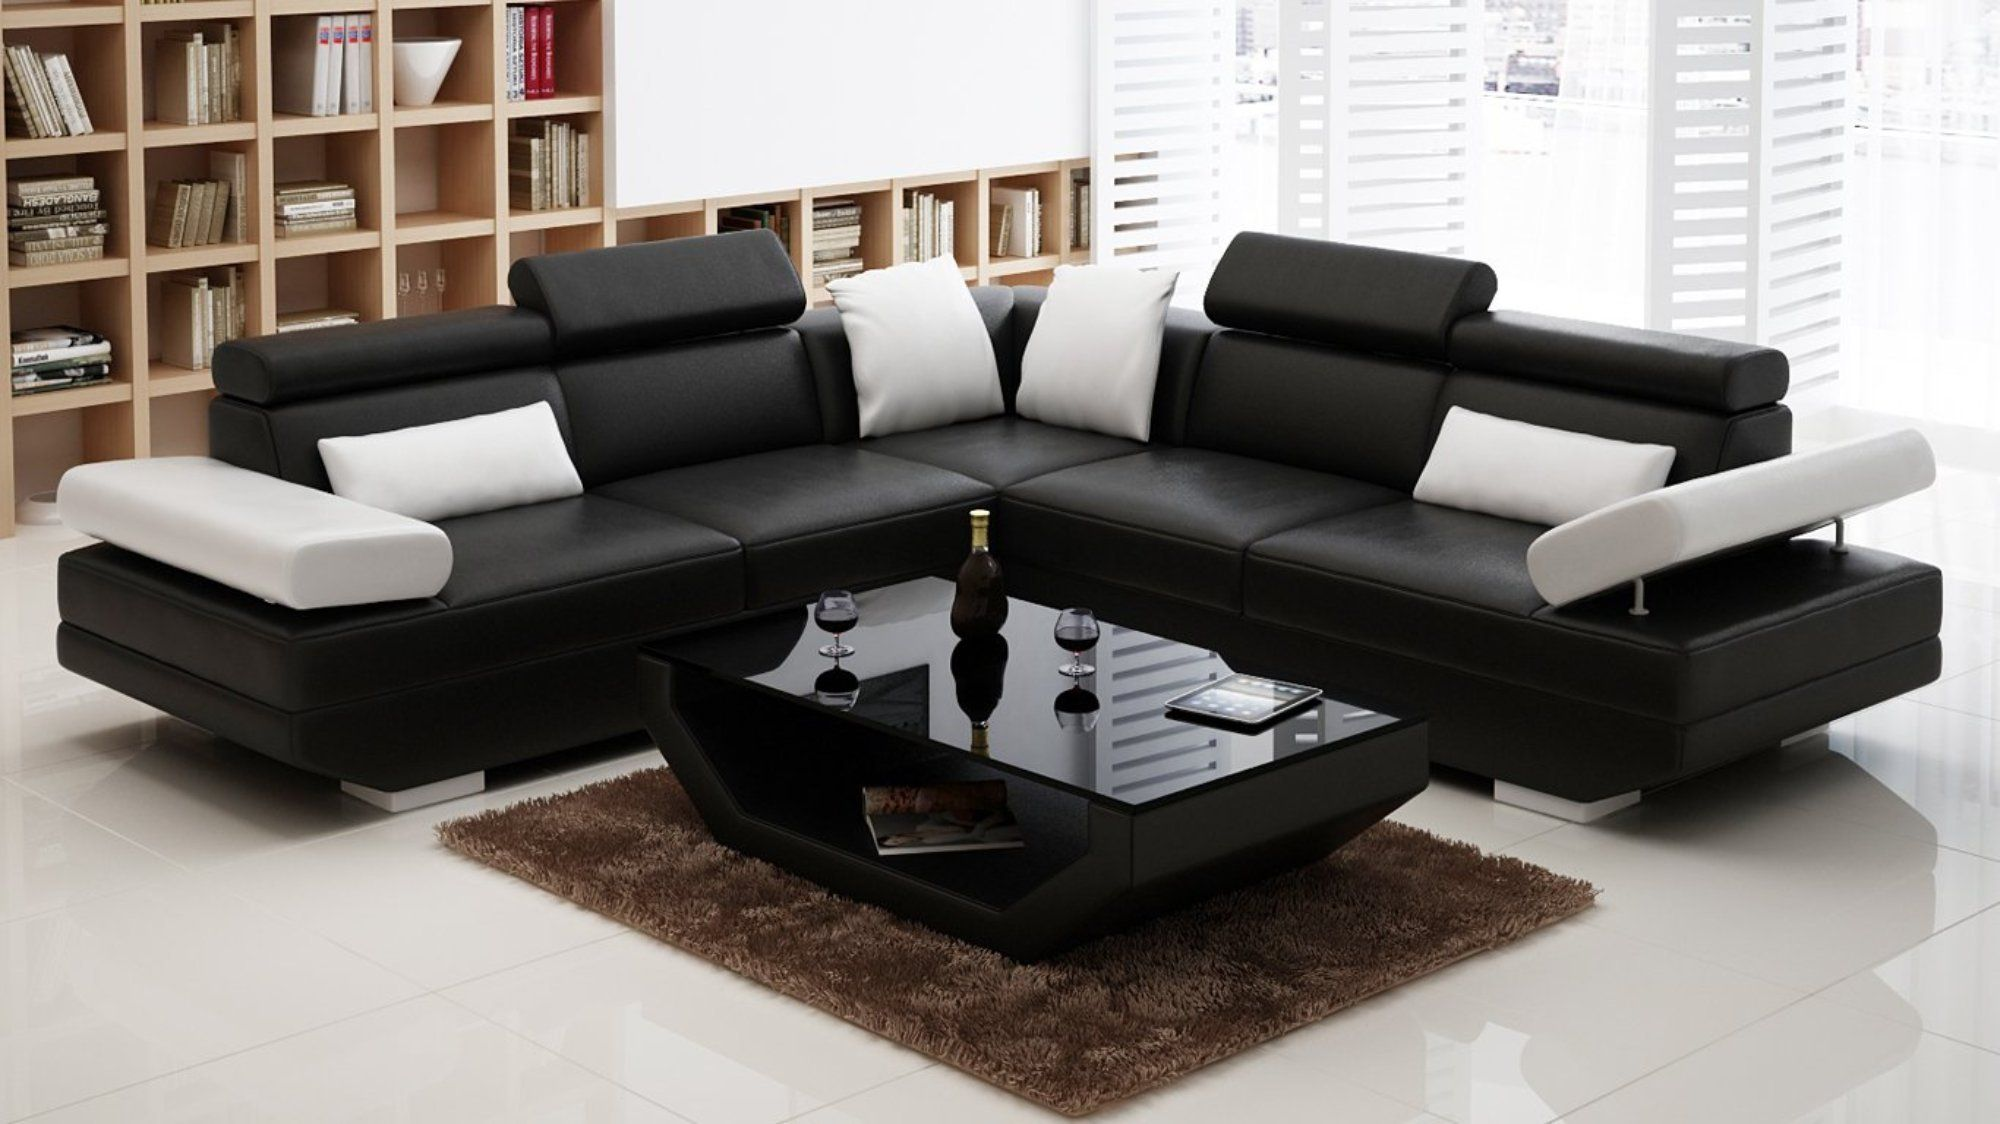 Luxury Modern L Shaped Sofa With Splittable Folding Backrests And